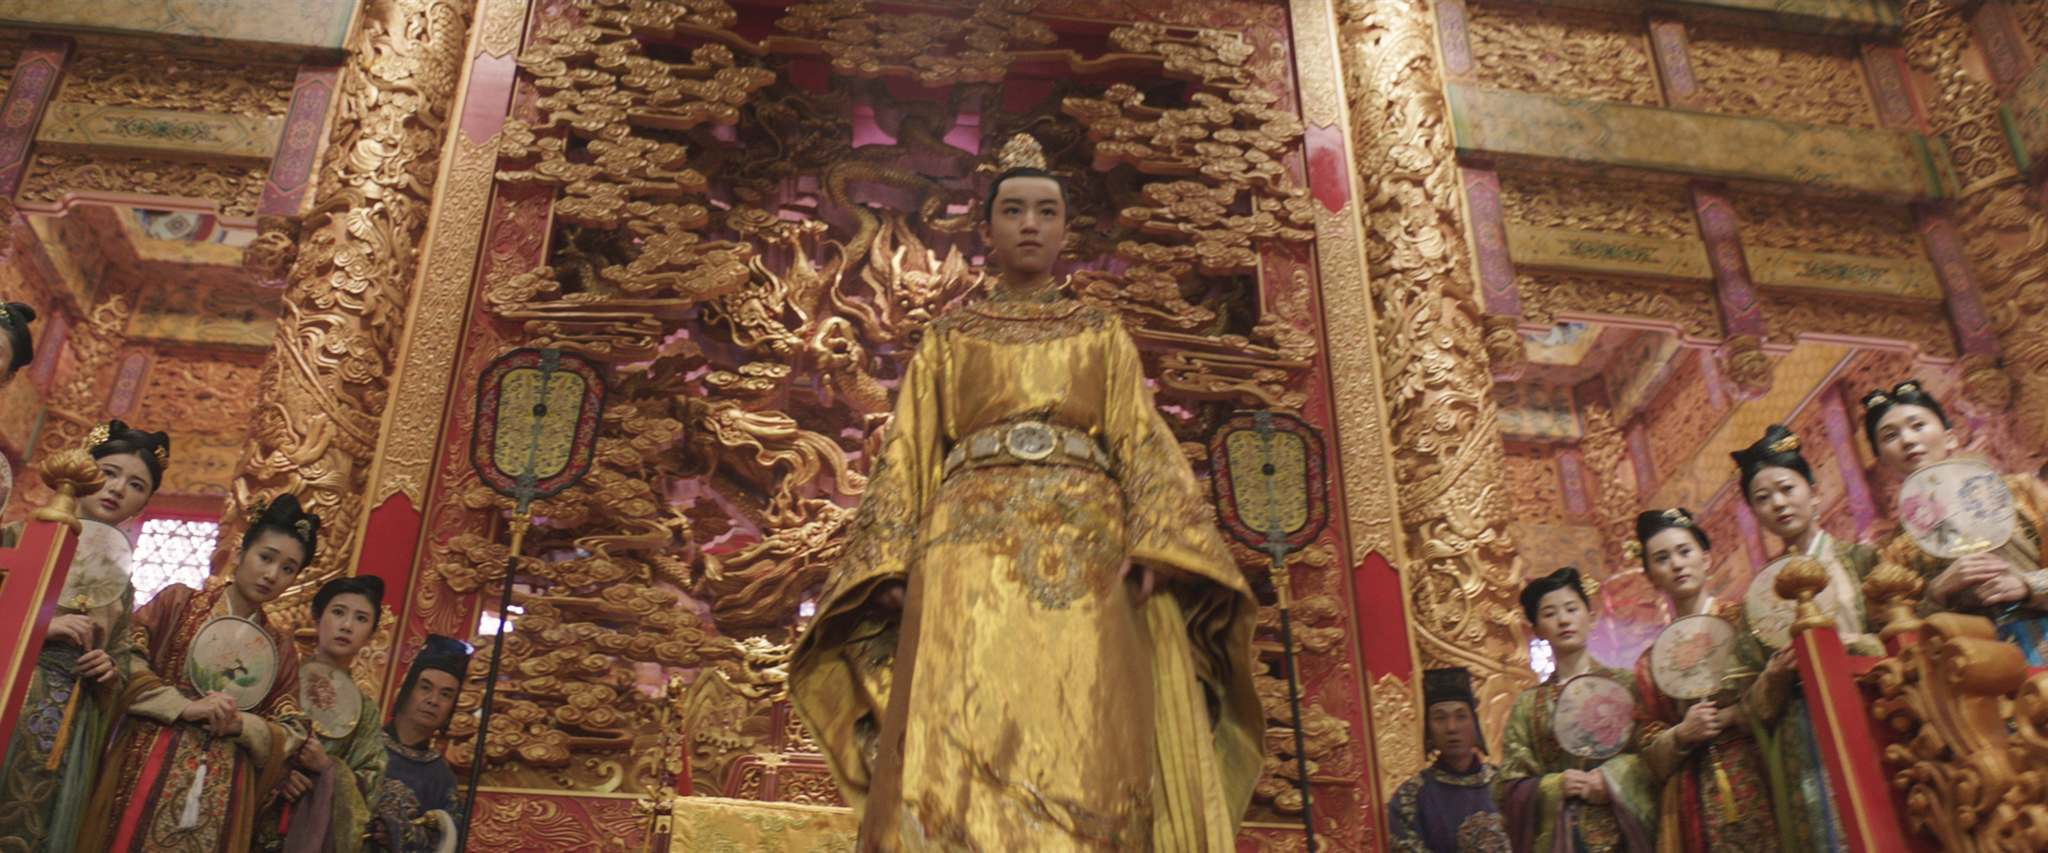 UNIVERSAL PICTURES</p> <p>Junkai Wang as The Emperor.</p> <p>&#8220;> </a><figcaption> <p>UNIVERSAL PICTURES</p> <p>Junkai Wang as The Emperor.</p> </figcaption></figure> <p>In a violent, gorgeously preposterous action sequence, we watch through William and Tovar's amazed eyes as the soldiers prepare to battle the taotei, basically insatiable and extremely ugly dragons that periodically try to swarm the Wall, eating everything in their way.</p> <p>William, who starts out as a not-my-fight loner, is eventually won over by the stern — and very beautiful — example of Commander Lin (<em>Police Story 2013's</em> Jing Tian).</p> <p>There have been charges of whitewashing: Why should the Chinese need Matt Damon to defend the Great Wall, after all? And Damon himself seems a little abashed. No matter what he's doing, the Bourne star tends to retain a certain all-American &#8220;captain of the lacrosse team&#8221; vibe, and he struggles to play a period character in a large-scale saga in which people say things like &#8220;Die well, brother.&#8221;</p> <figure class=